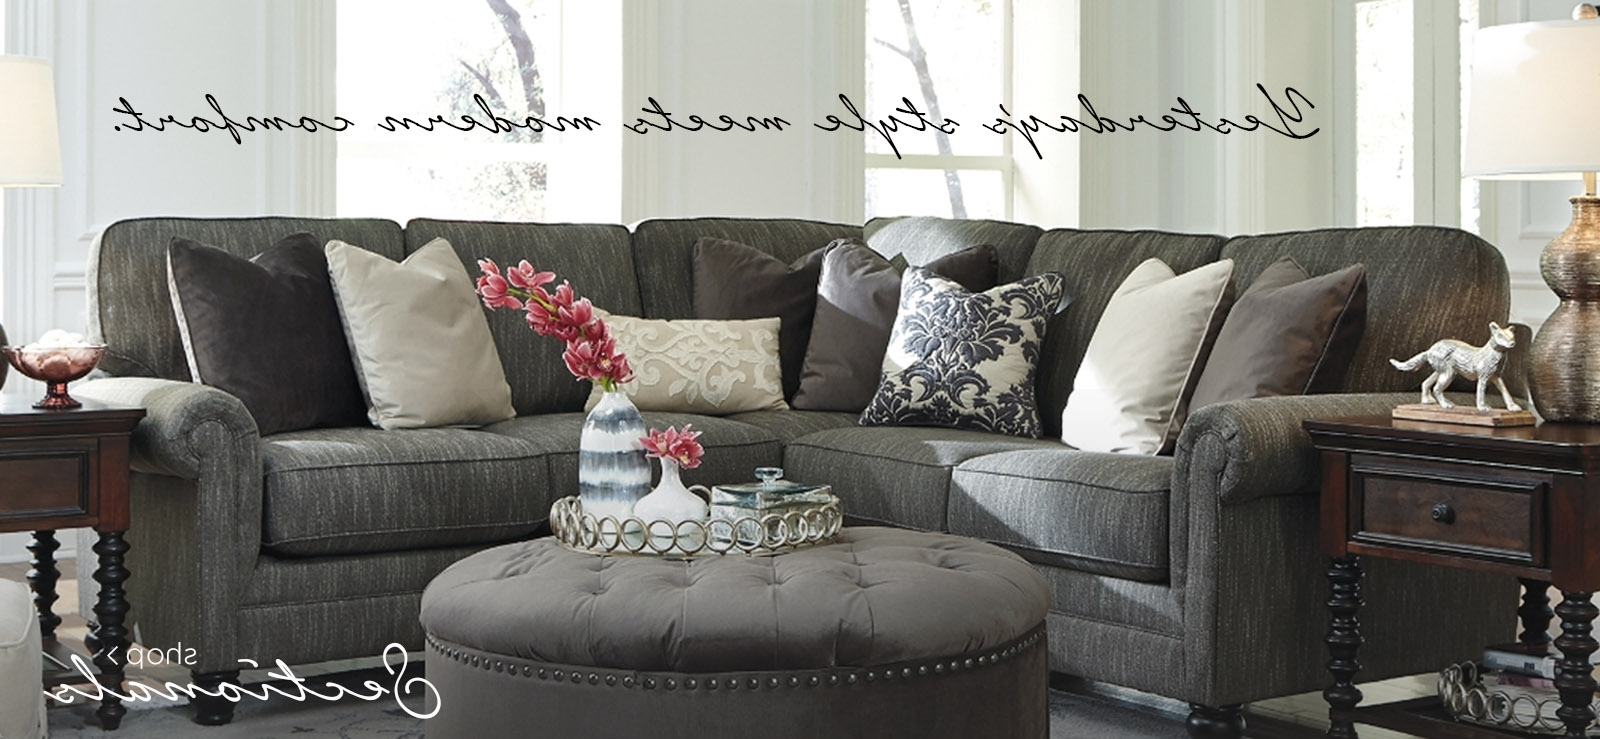 Well Known Casual Sofas And Chairs 88 With Casual Sofas And Chairs In Casual Sofas And Chairs (View 18 of 20)